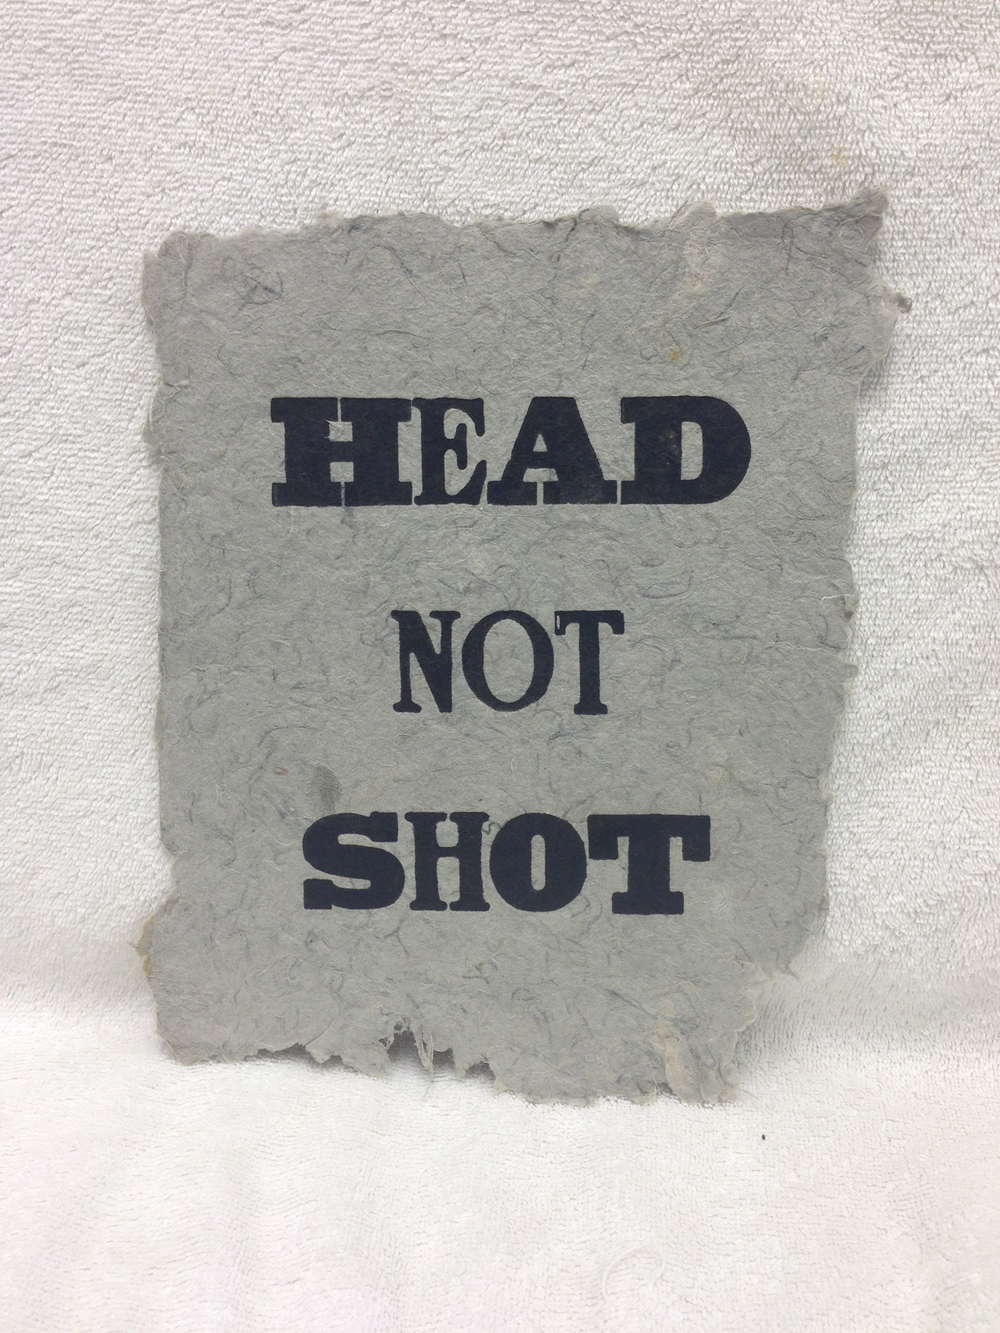 David Keefe Marines - Iraq _Head Not Shot_ 2011 Letterpress on Handmade Paper from military uniforms 10 x 8 PCNJ IMG_0931.jpg